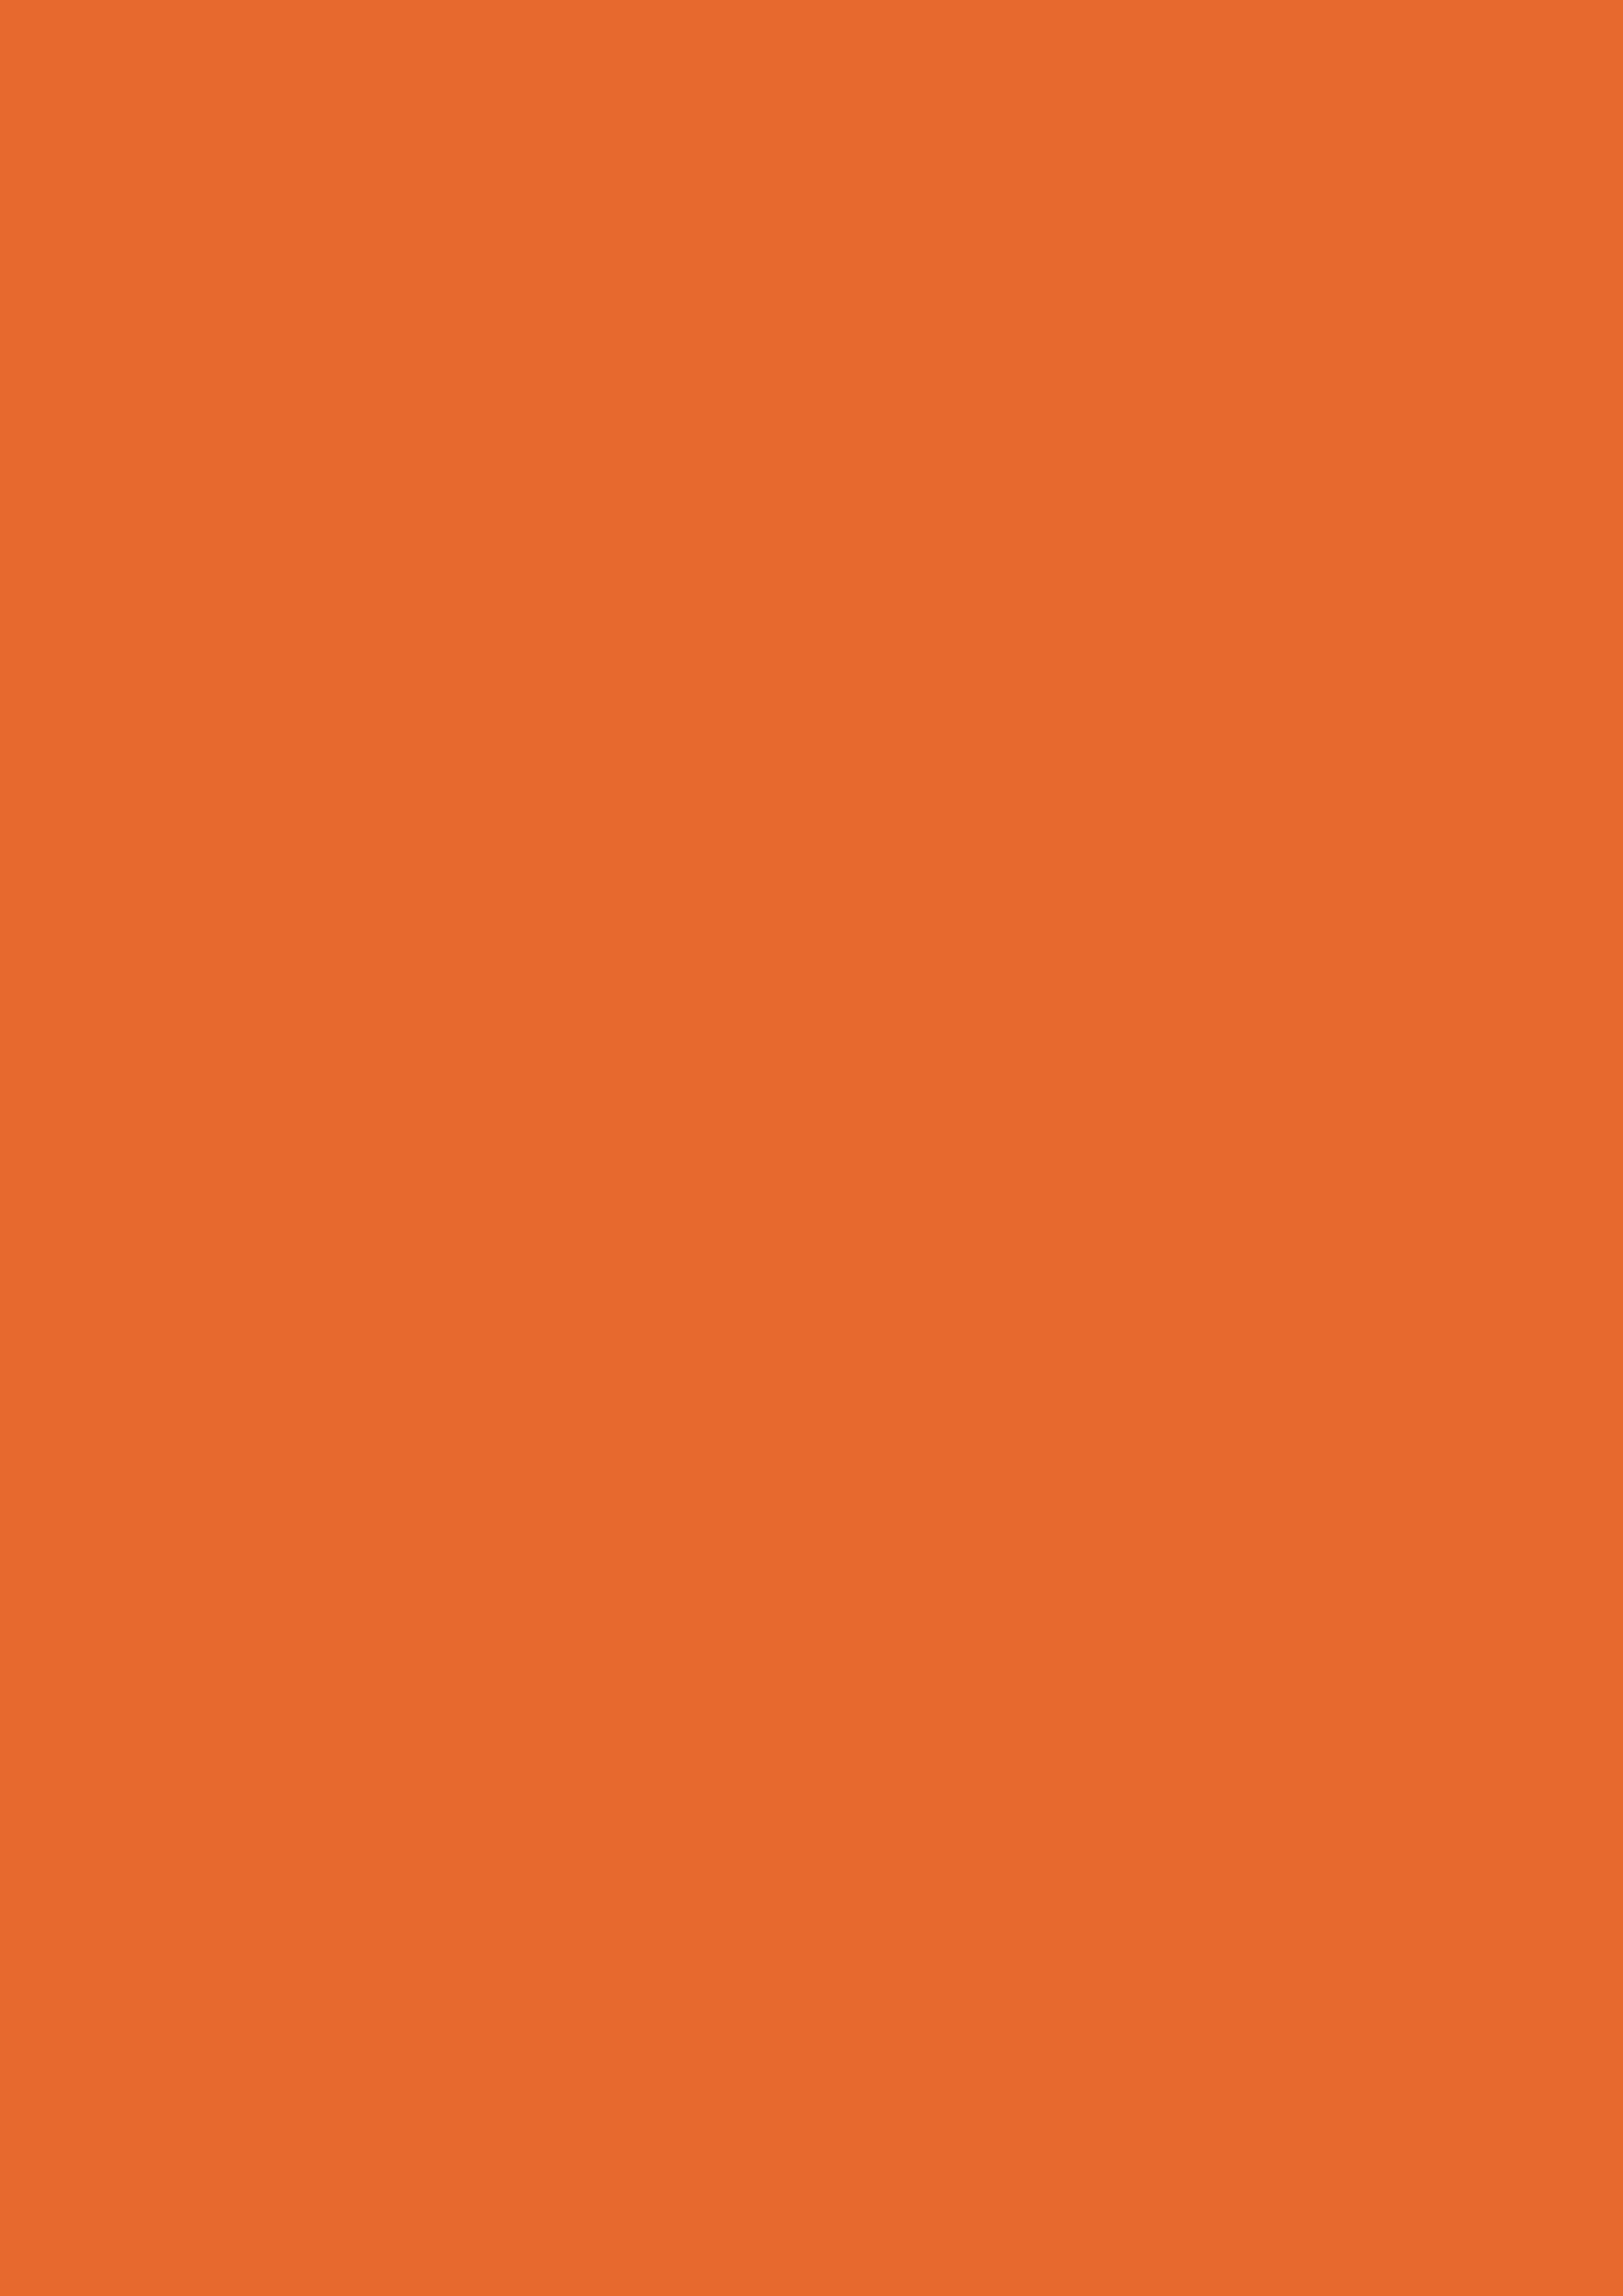 2480x3508 Deep Carrot Orange Solid Color Background